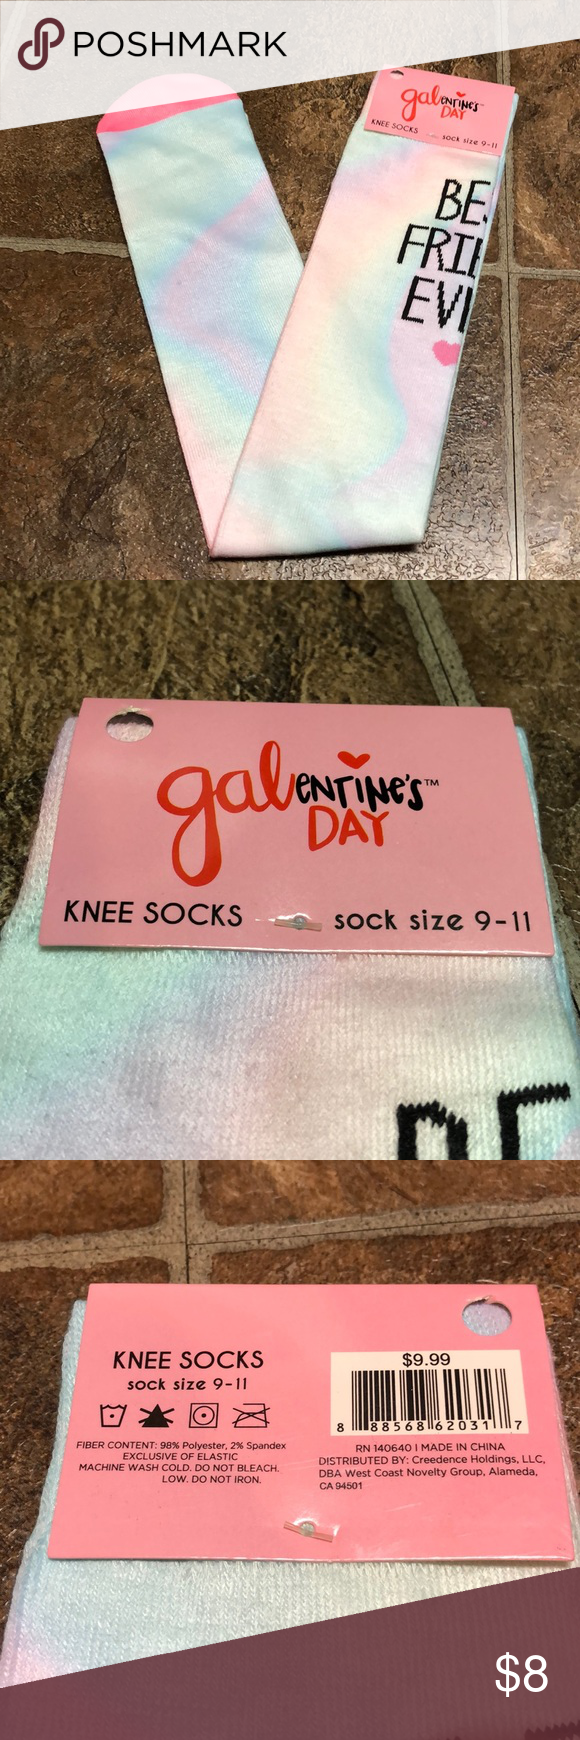 Galentime S Day Knee High Socks Bff Nwt In 2020 Knee High Socks Bff Knee High